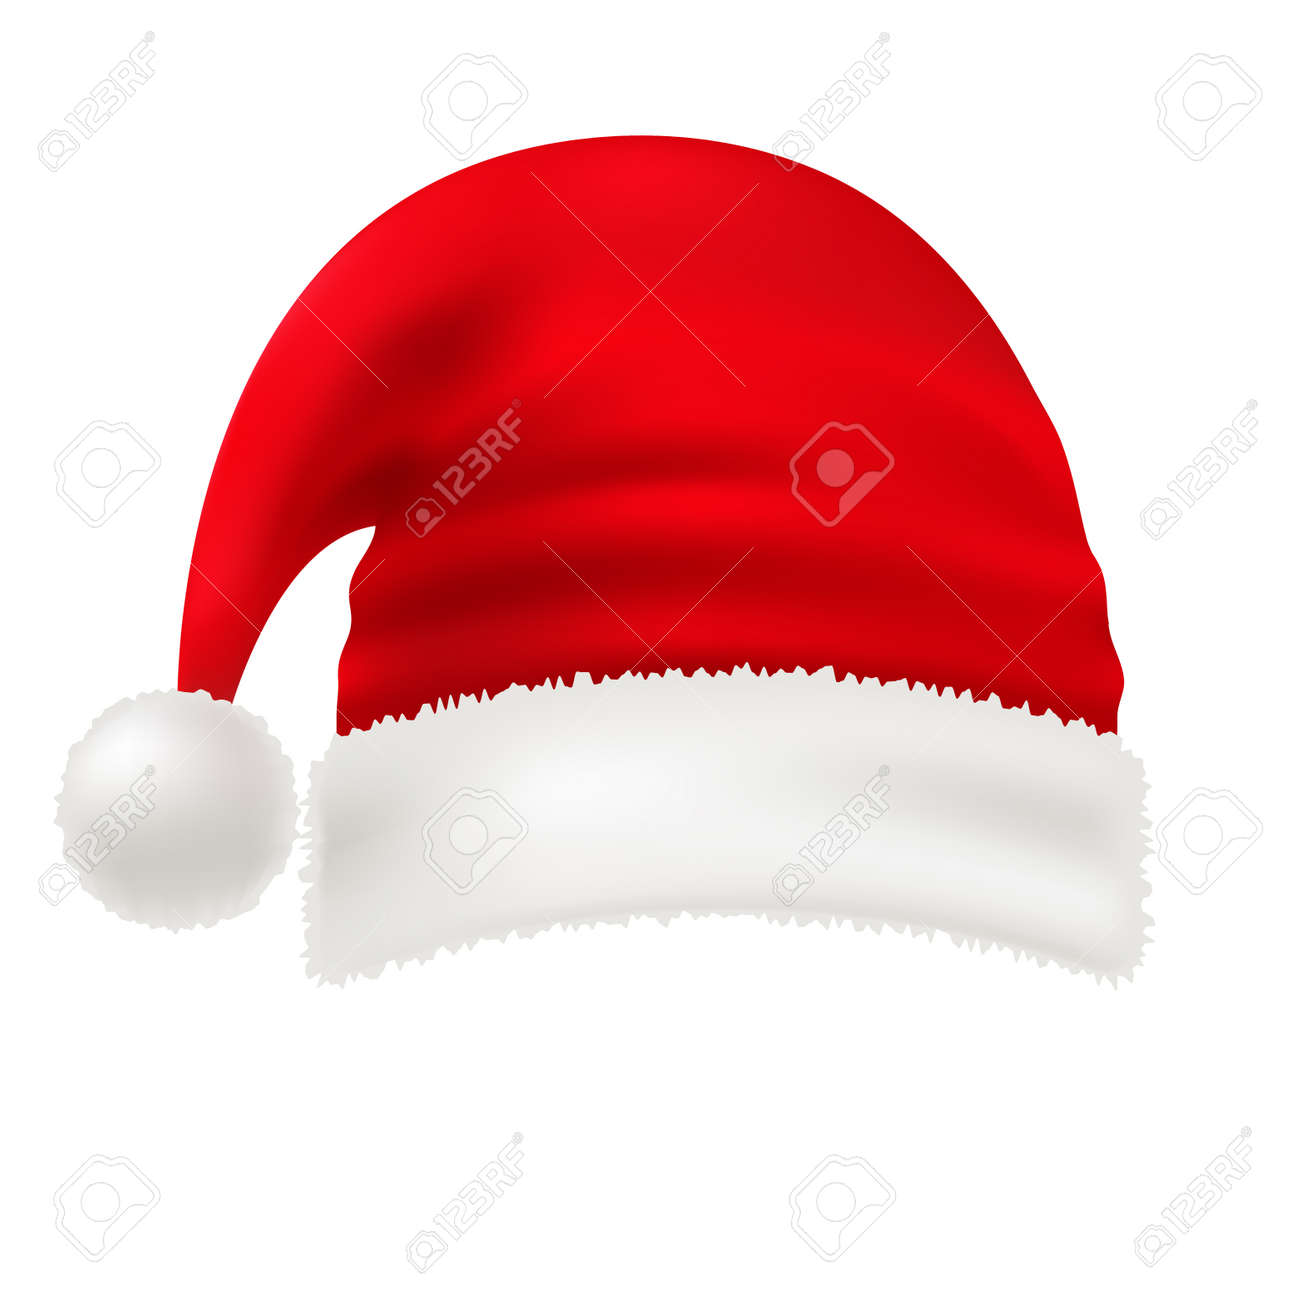 Christmas Hat Transparent Clipart.Vector Red Santa Hat Isolated On White Transparent Background